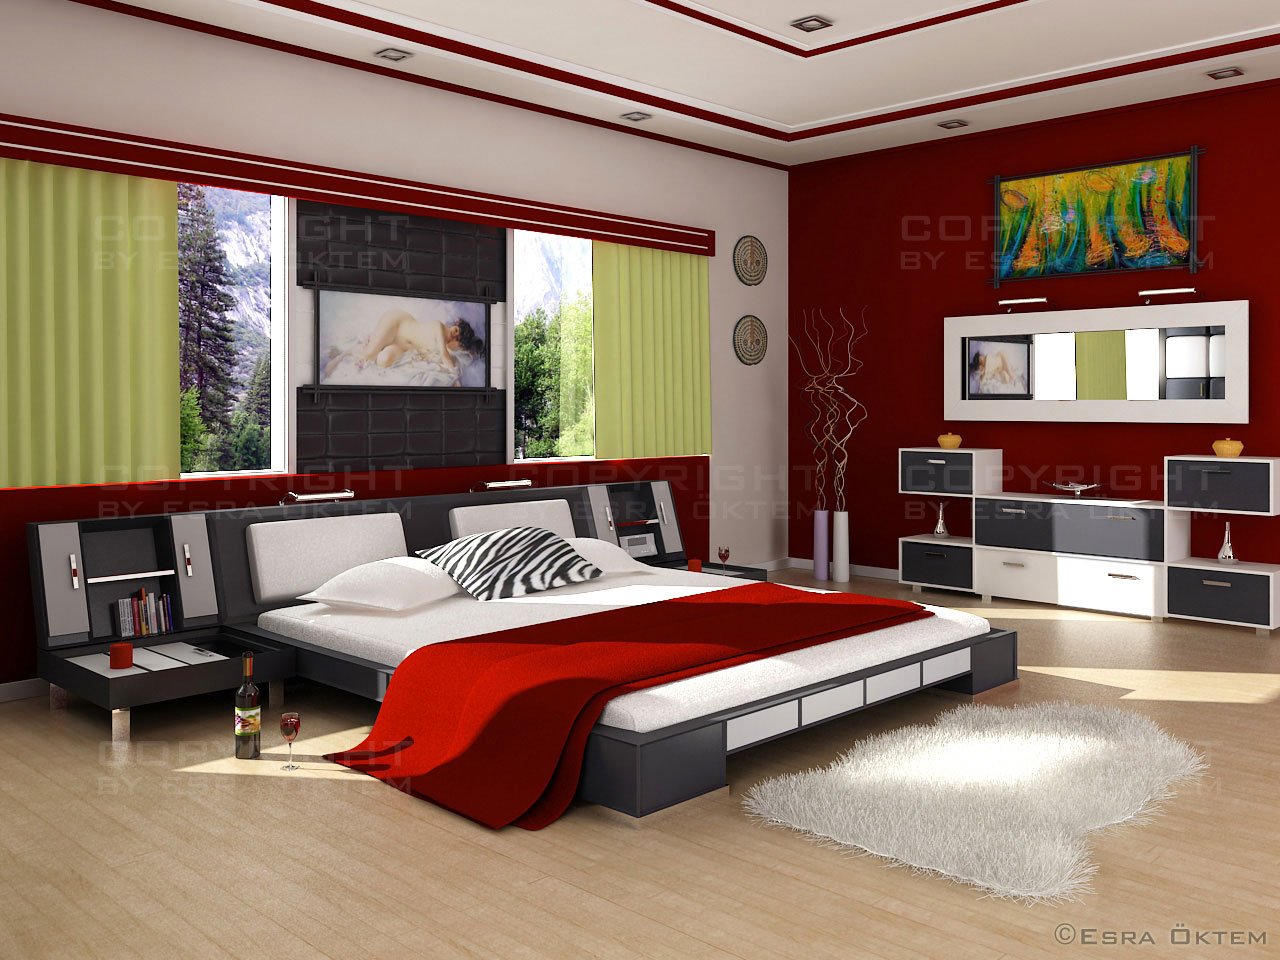 bedroom decor themessnsm155com - Ideas For Bedroom Decorating Themes